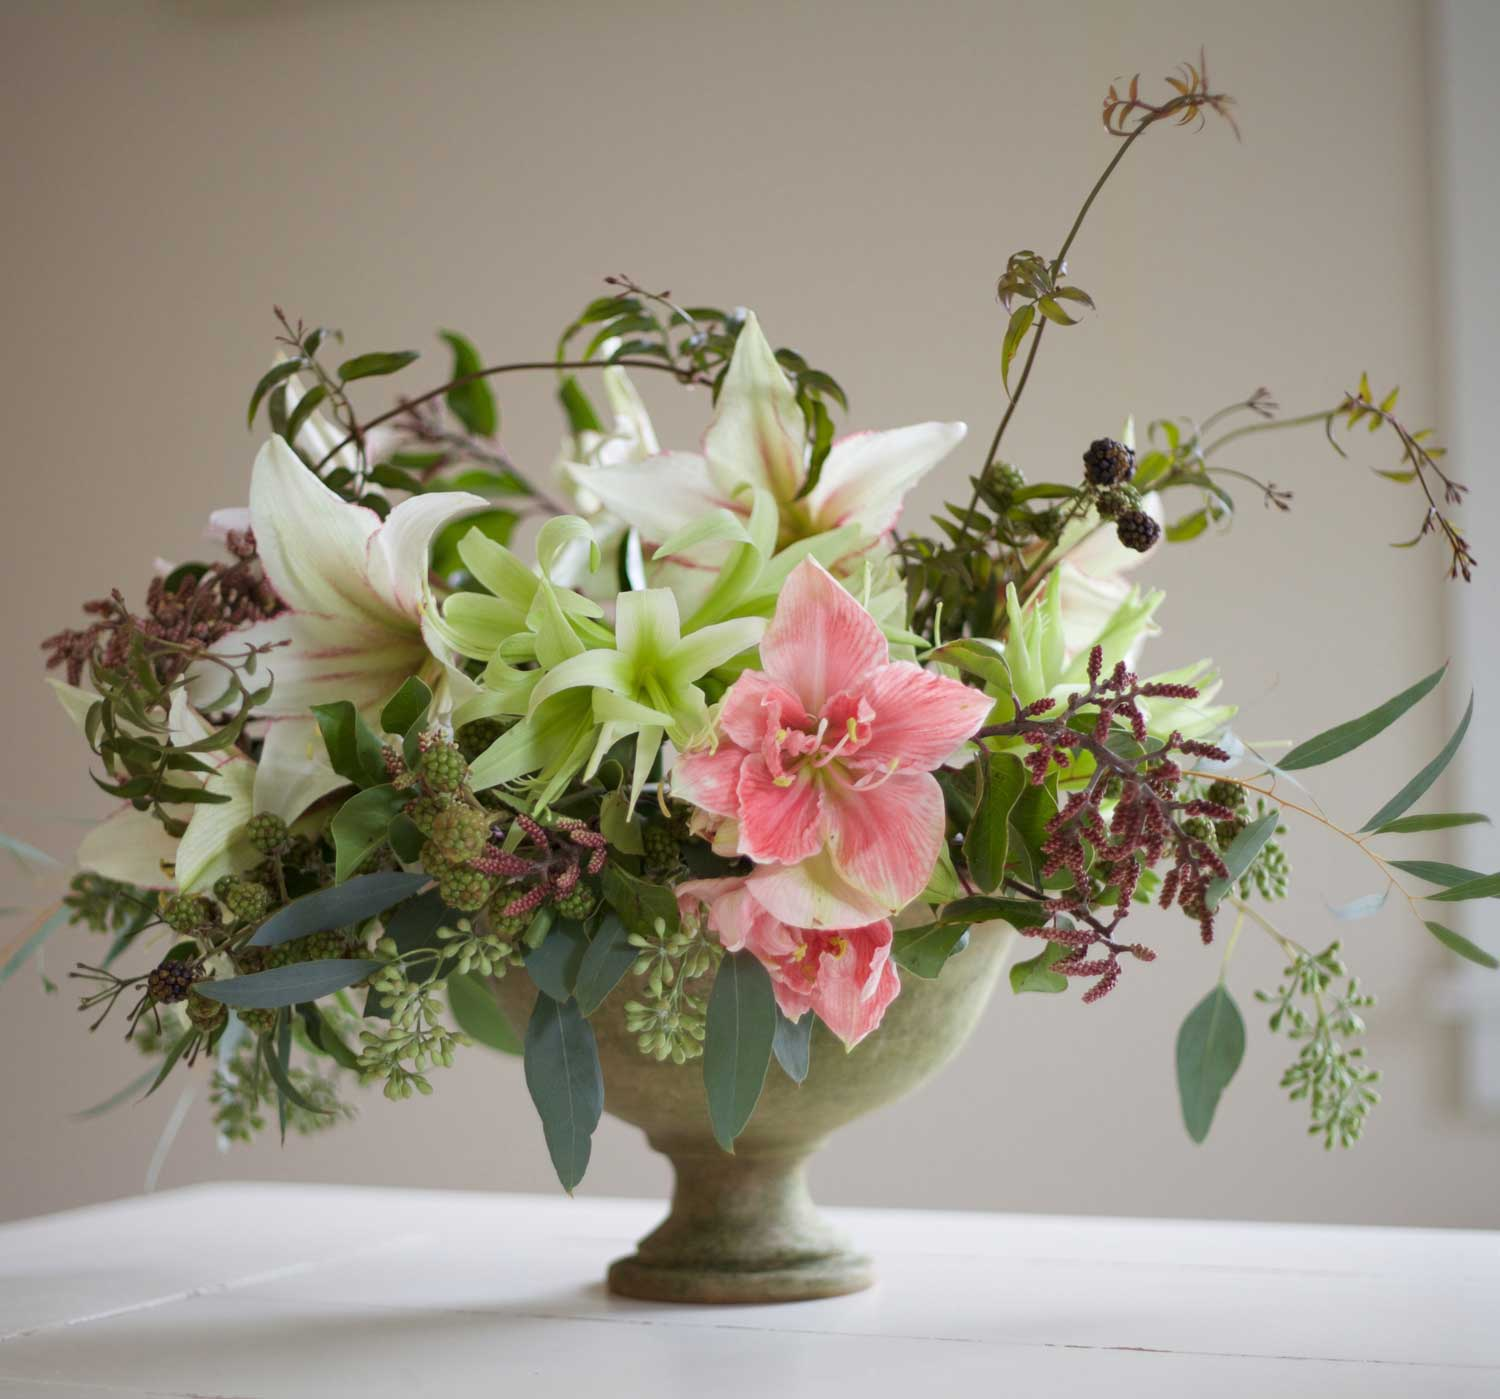 How to Use Amaryllis as Cut Flowers - Longfield Gardens